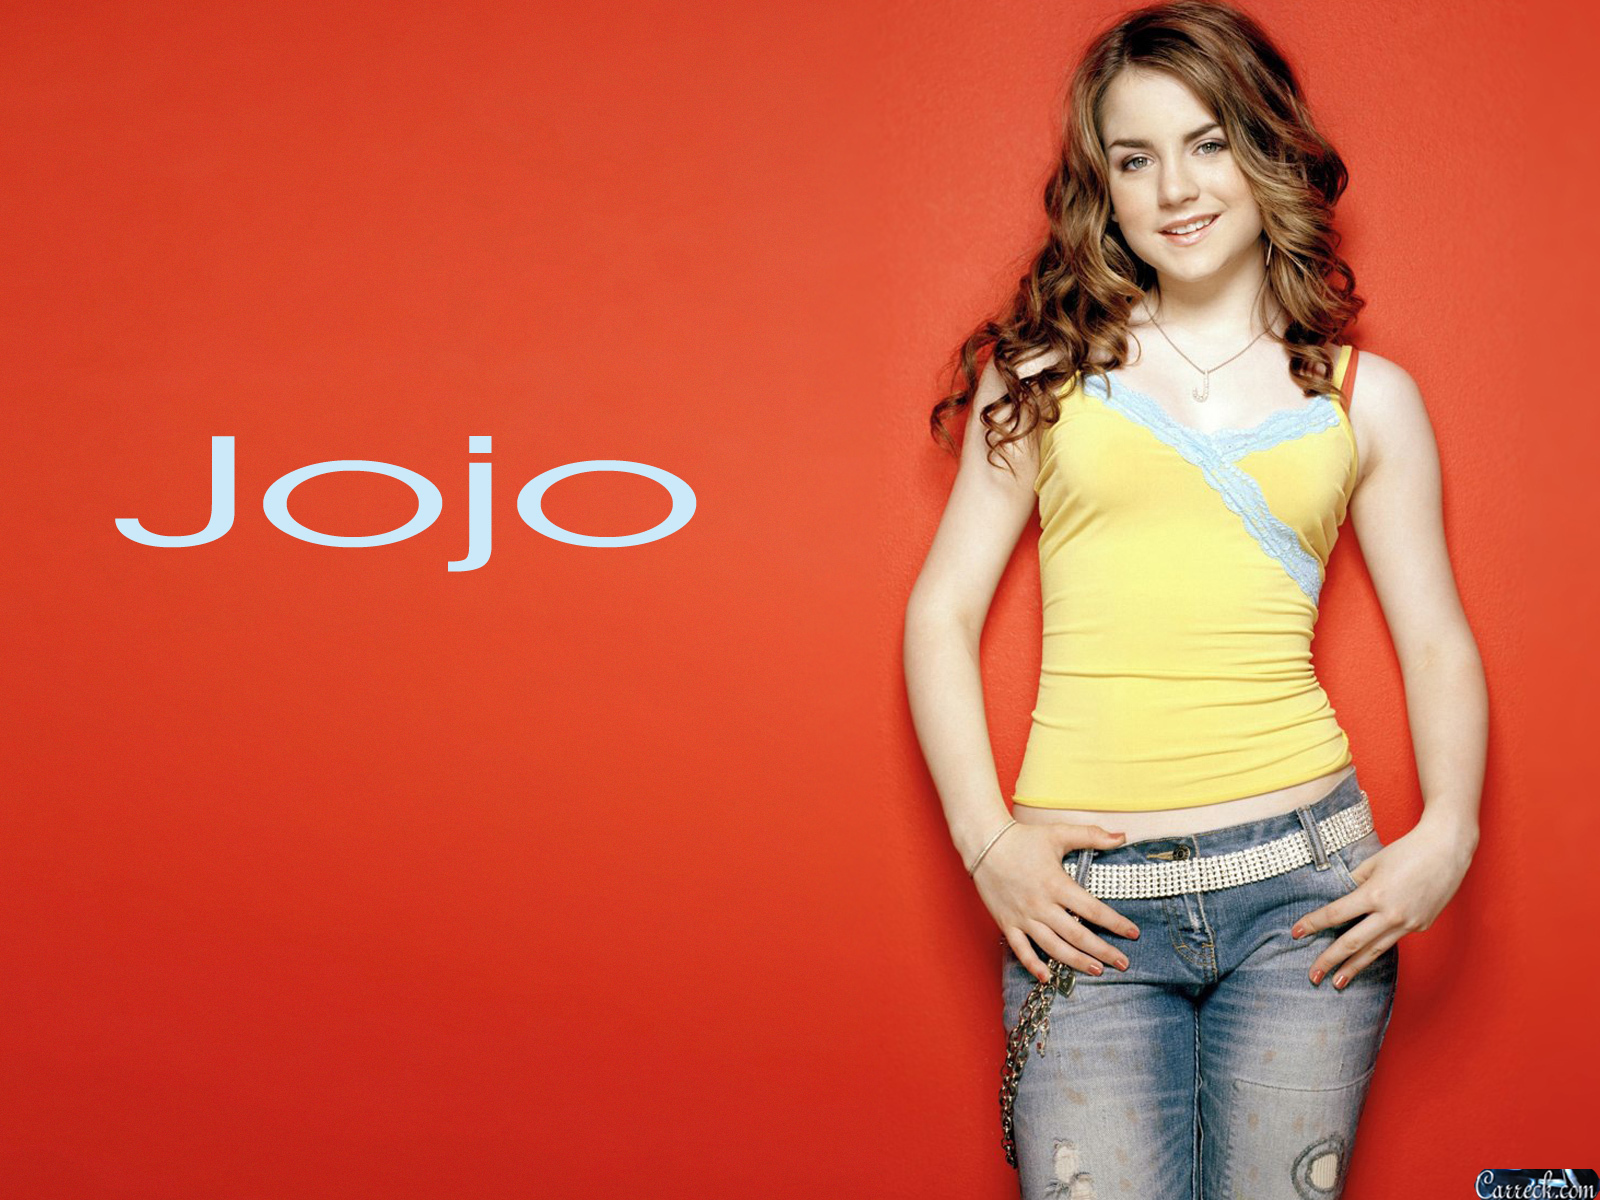 jojo jojo levesque wallpaper 20915787 fanpop